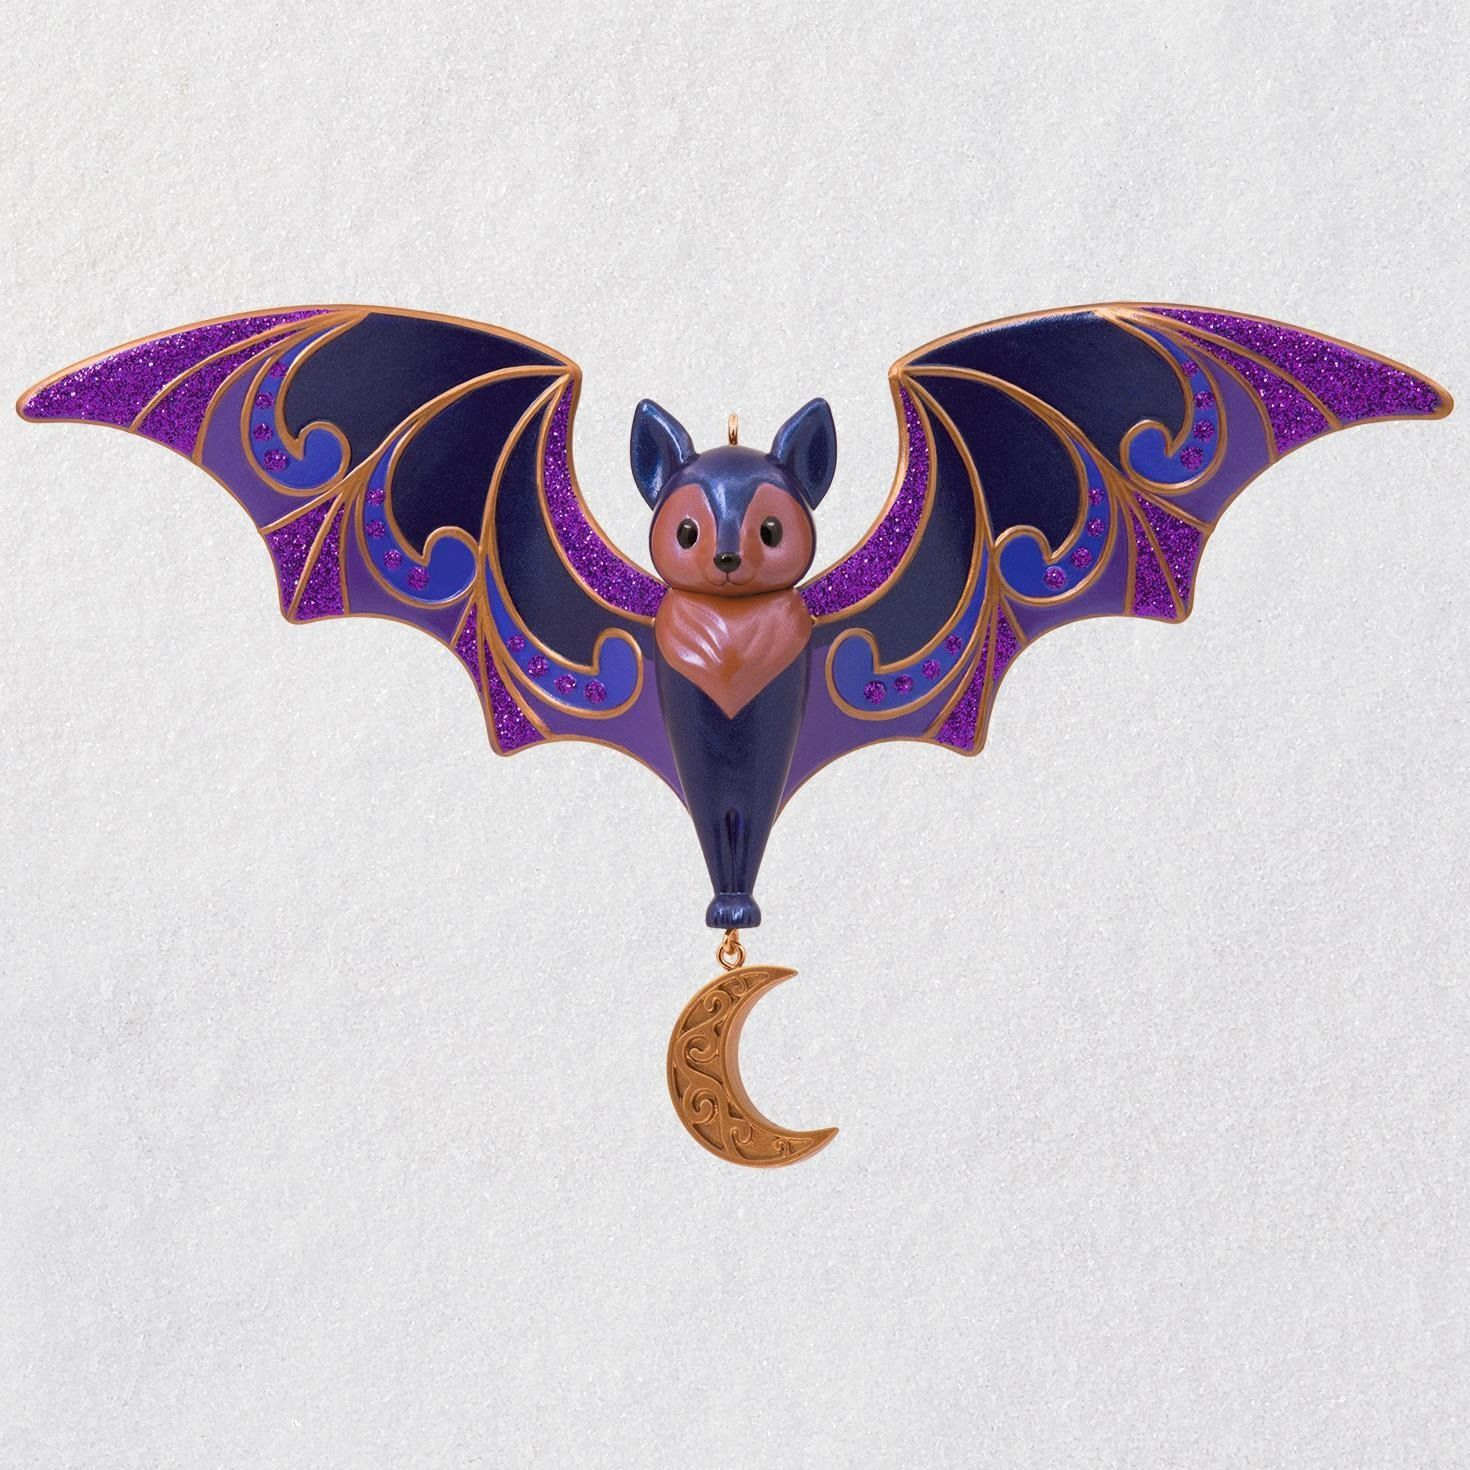 Bewitching Bat Halloween Ornament